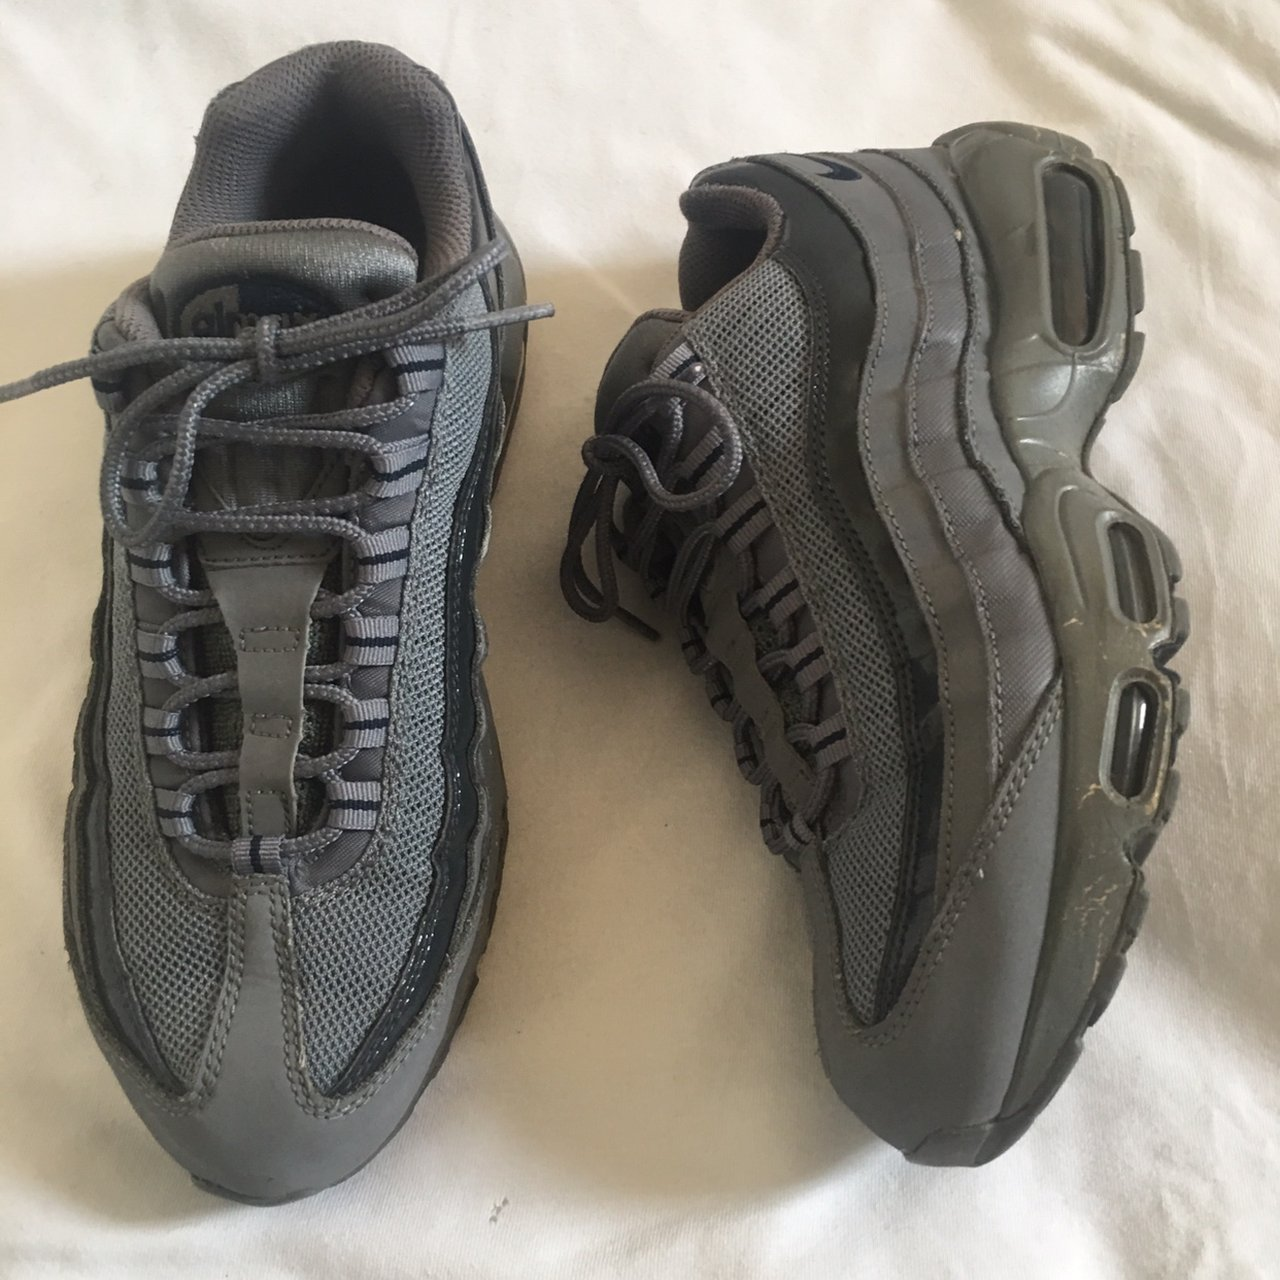 Nike grey air max 95 UK SIZE 6 with 3M